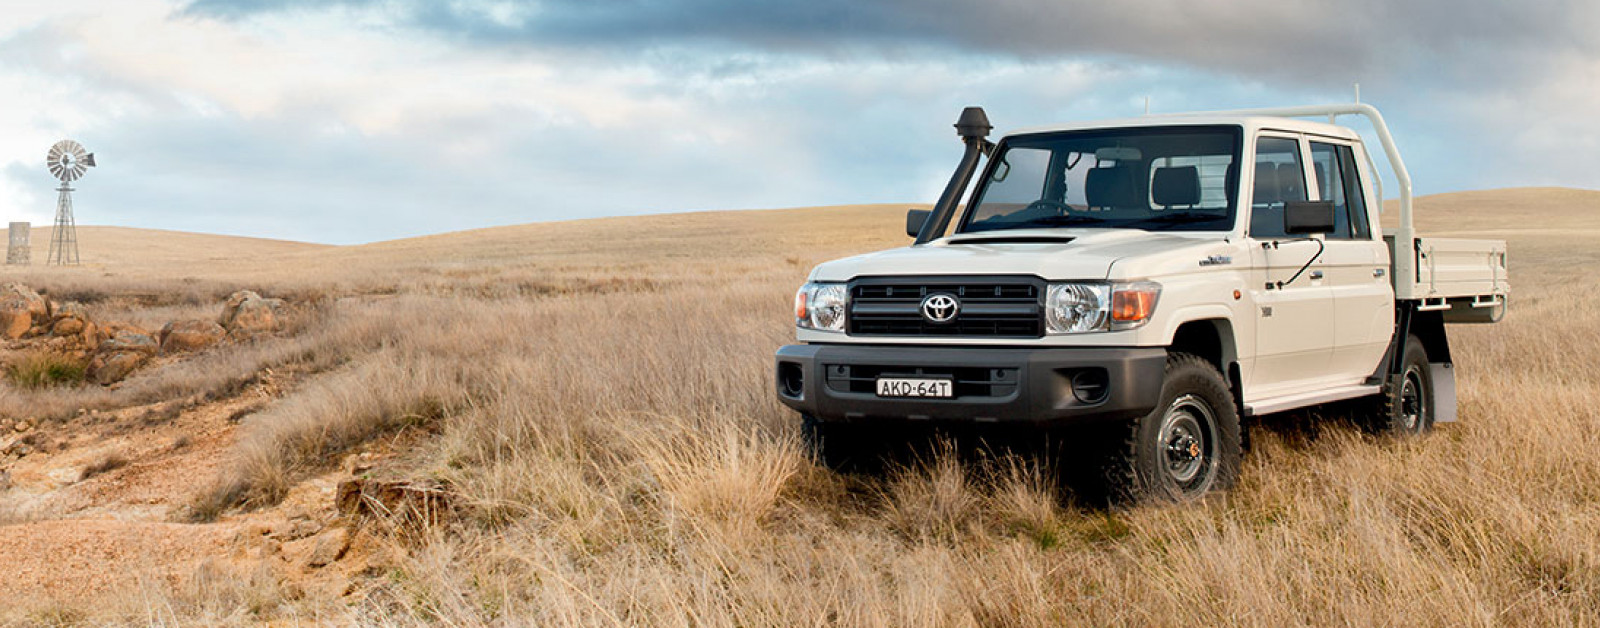 New Toyota LandCruiser 70 for sale - Cooma Toyota